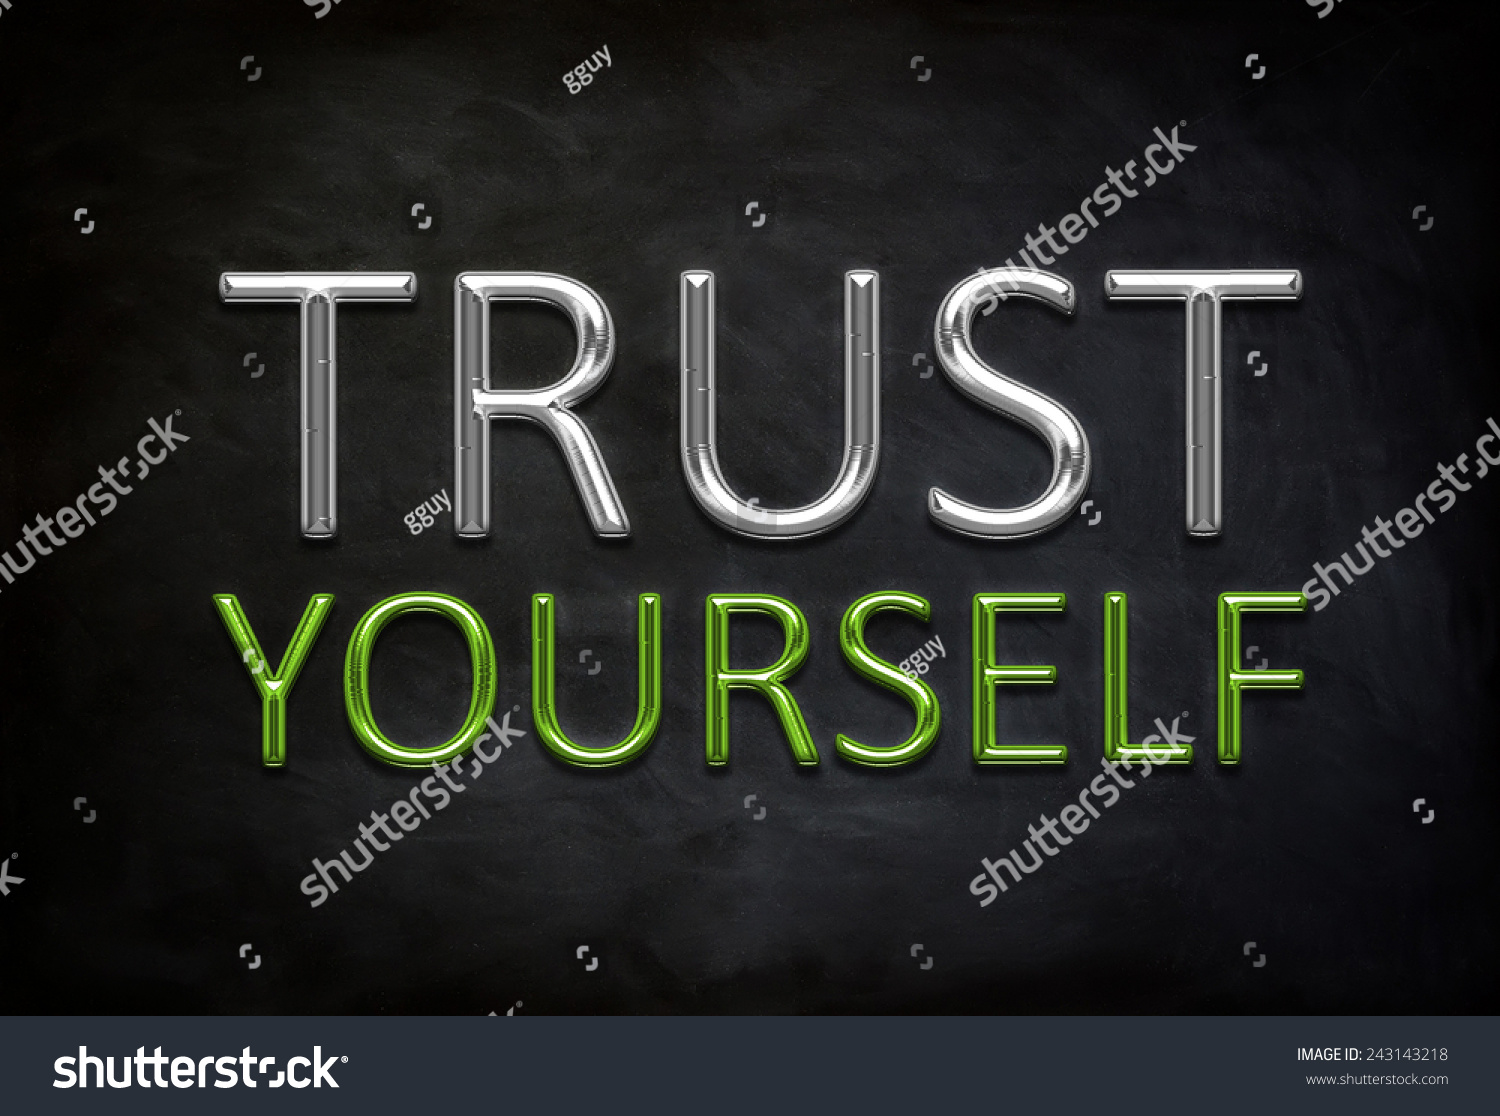 Trust Yourself Motivational Quote With Chalkboard Background